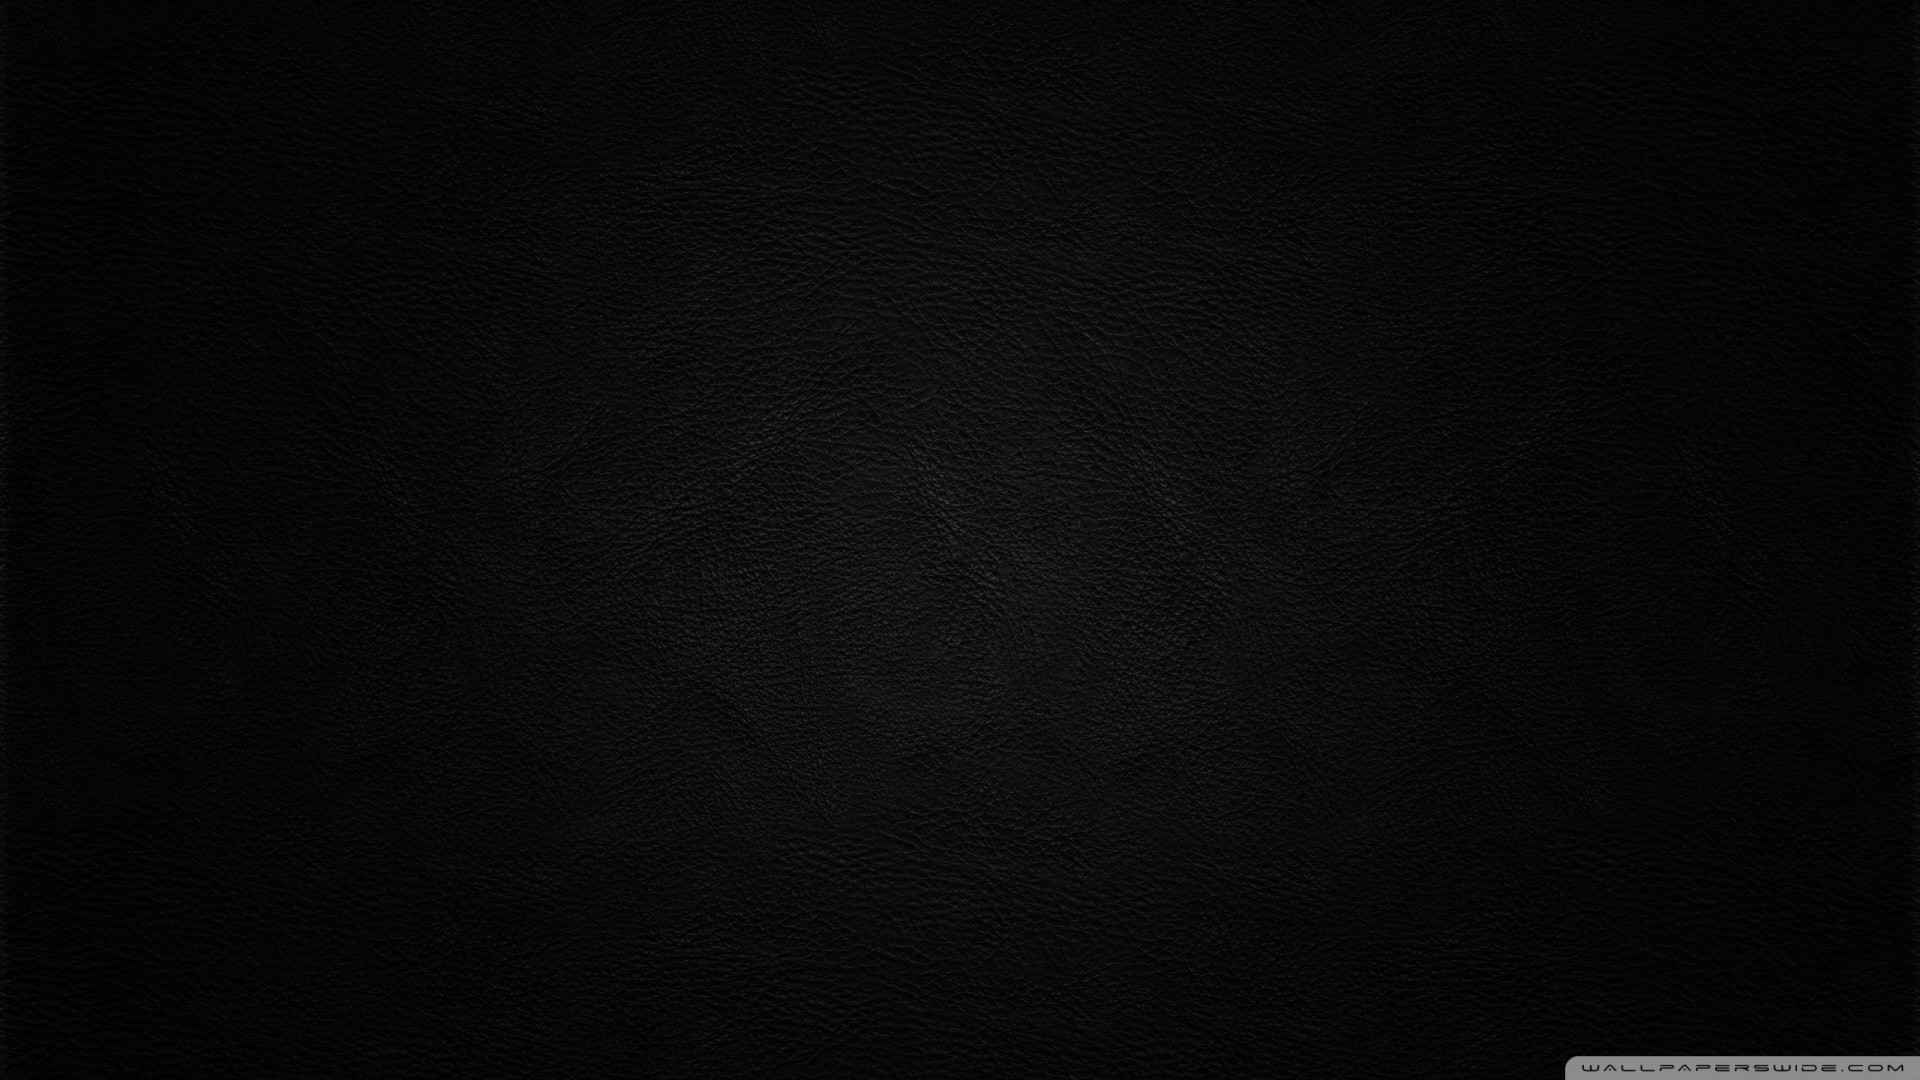 Wallpapers Hd 1080p Black 85 Background Pictures